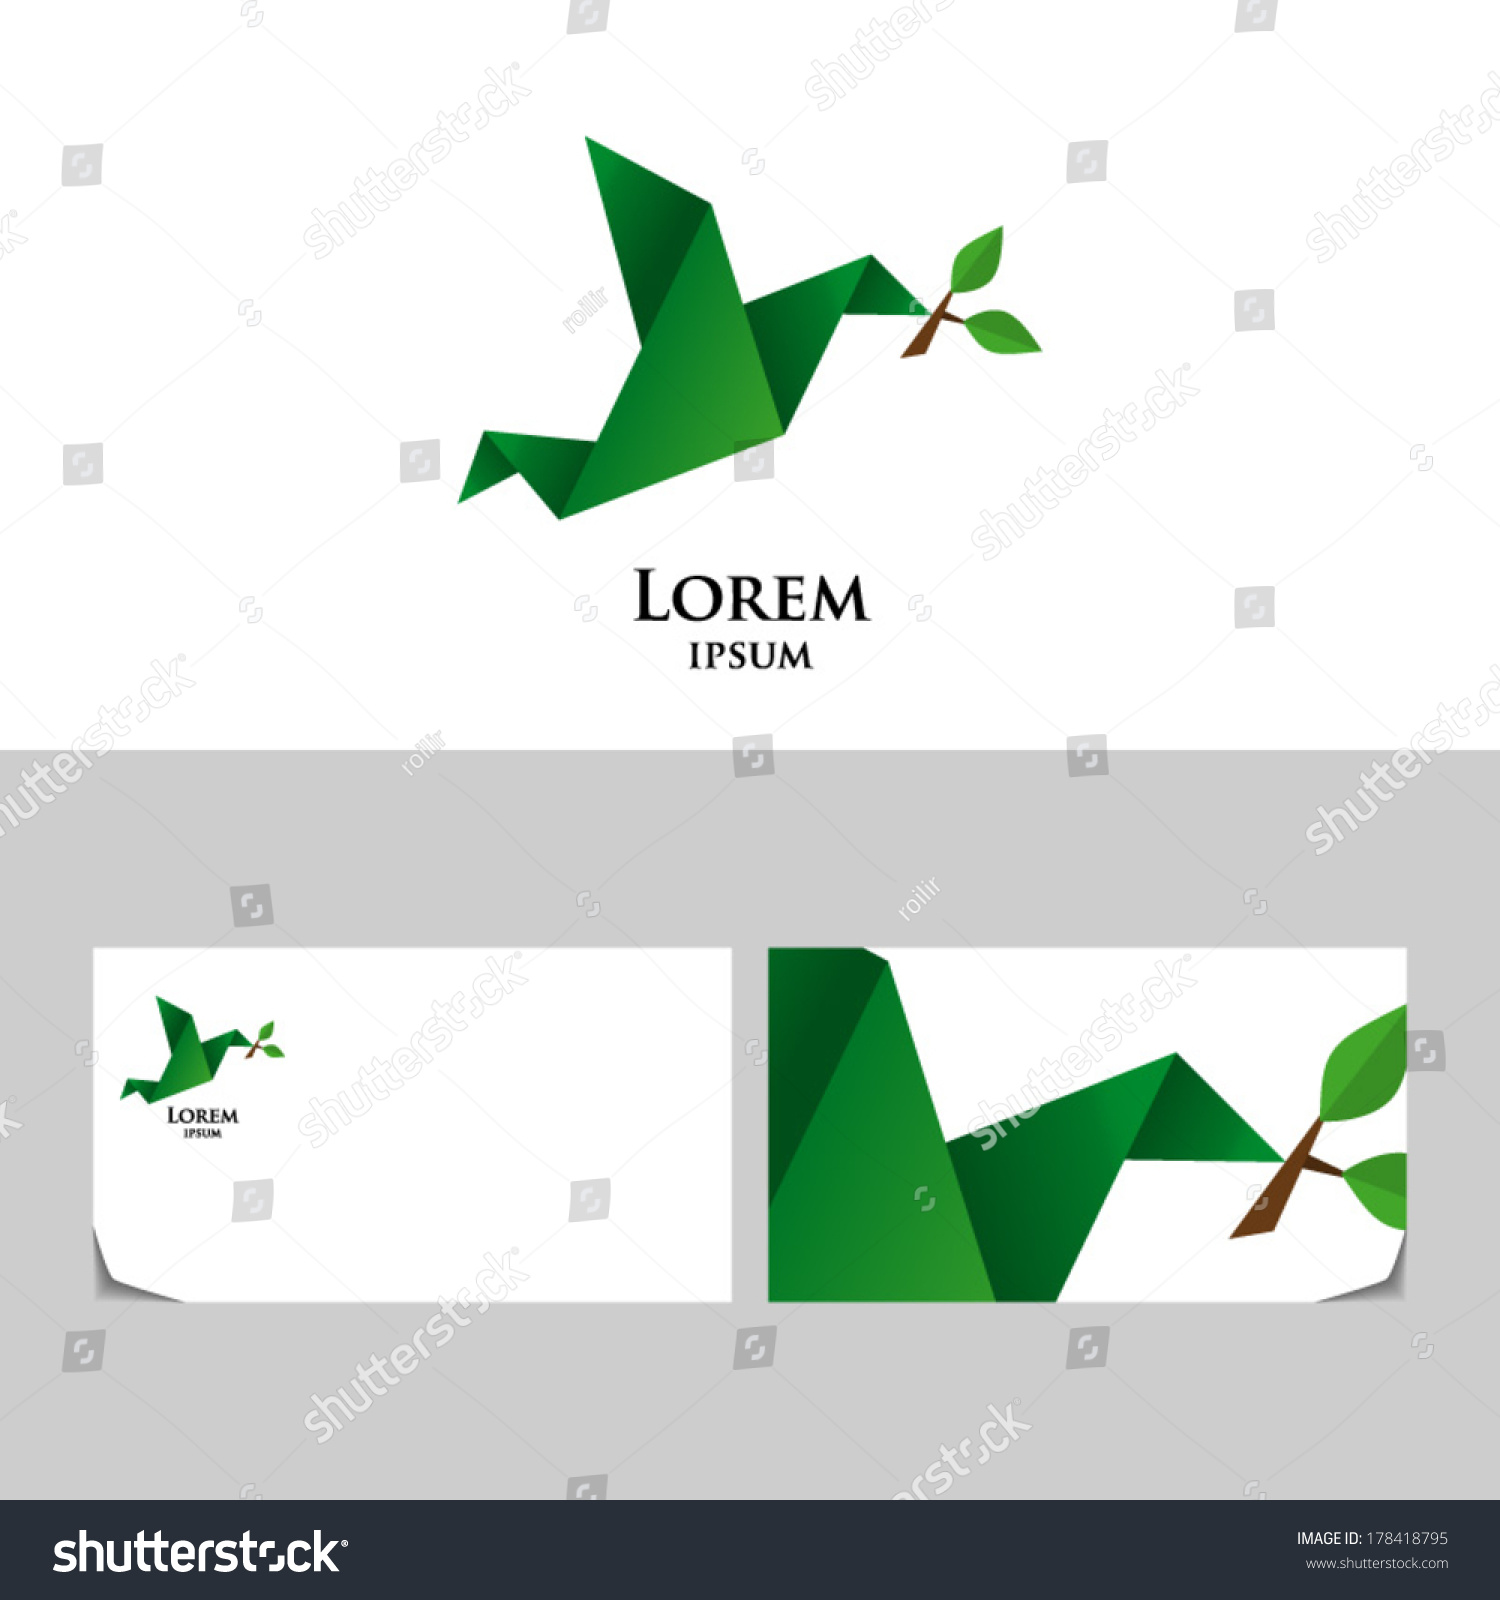 Eco emblem bird twig tree origami stock vector 178418795 eco emblem with bird and twig tree in origami styleicon design element with business jeuxipadfo Gallery